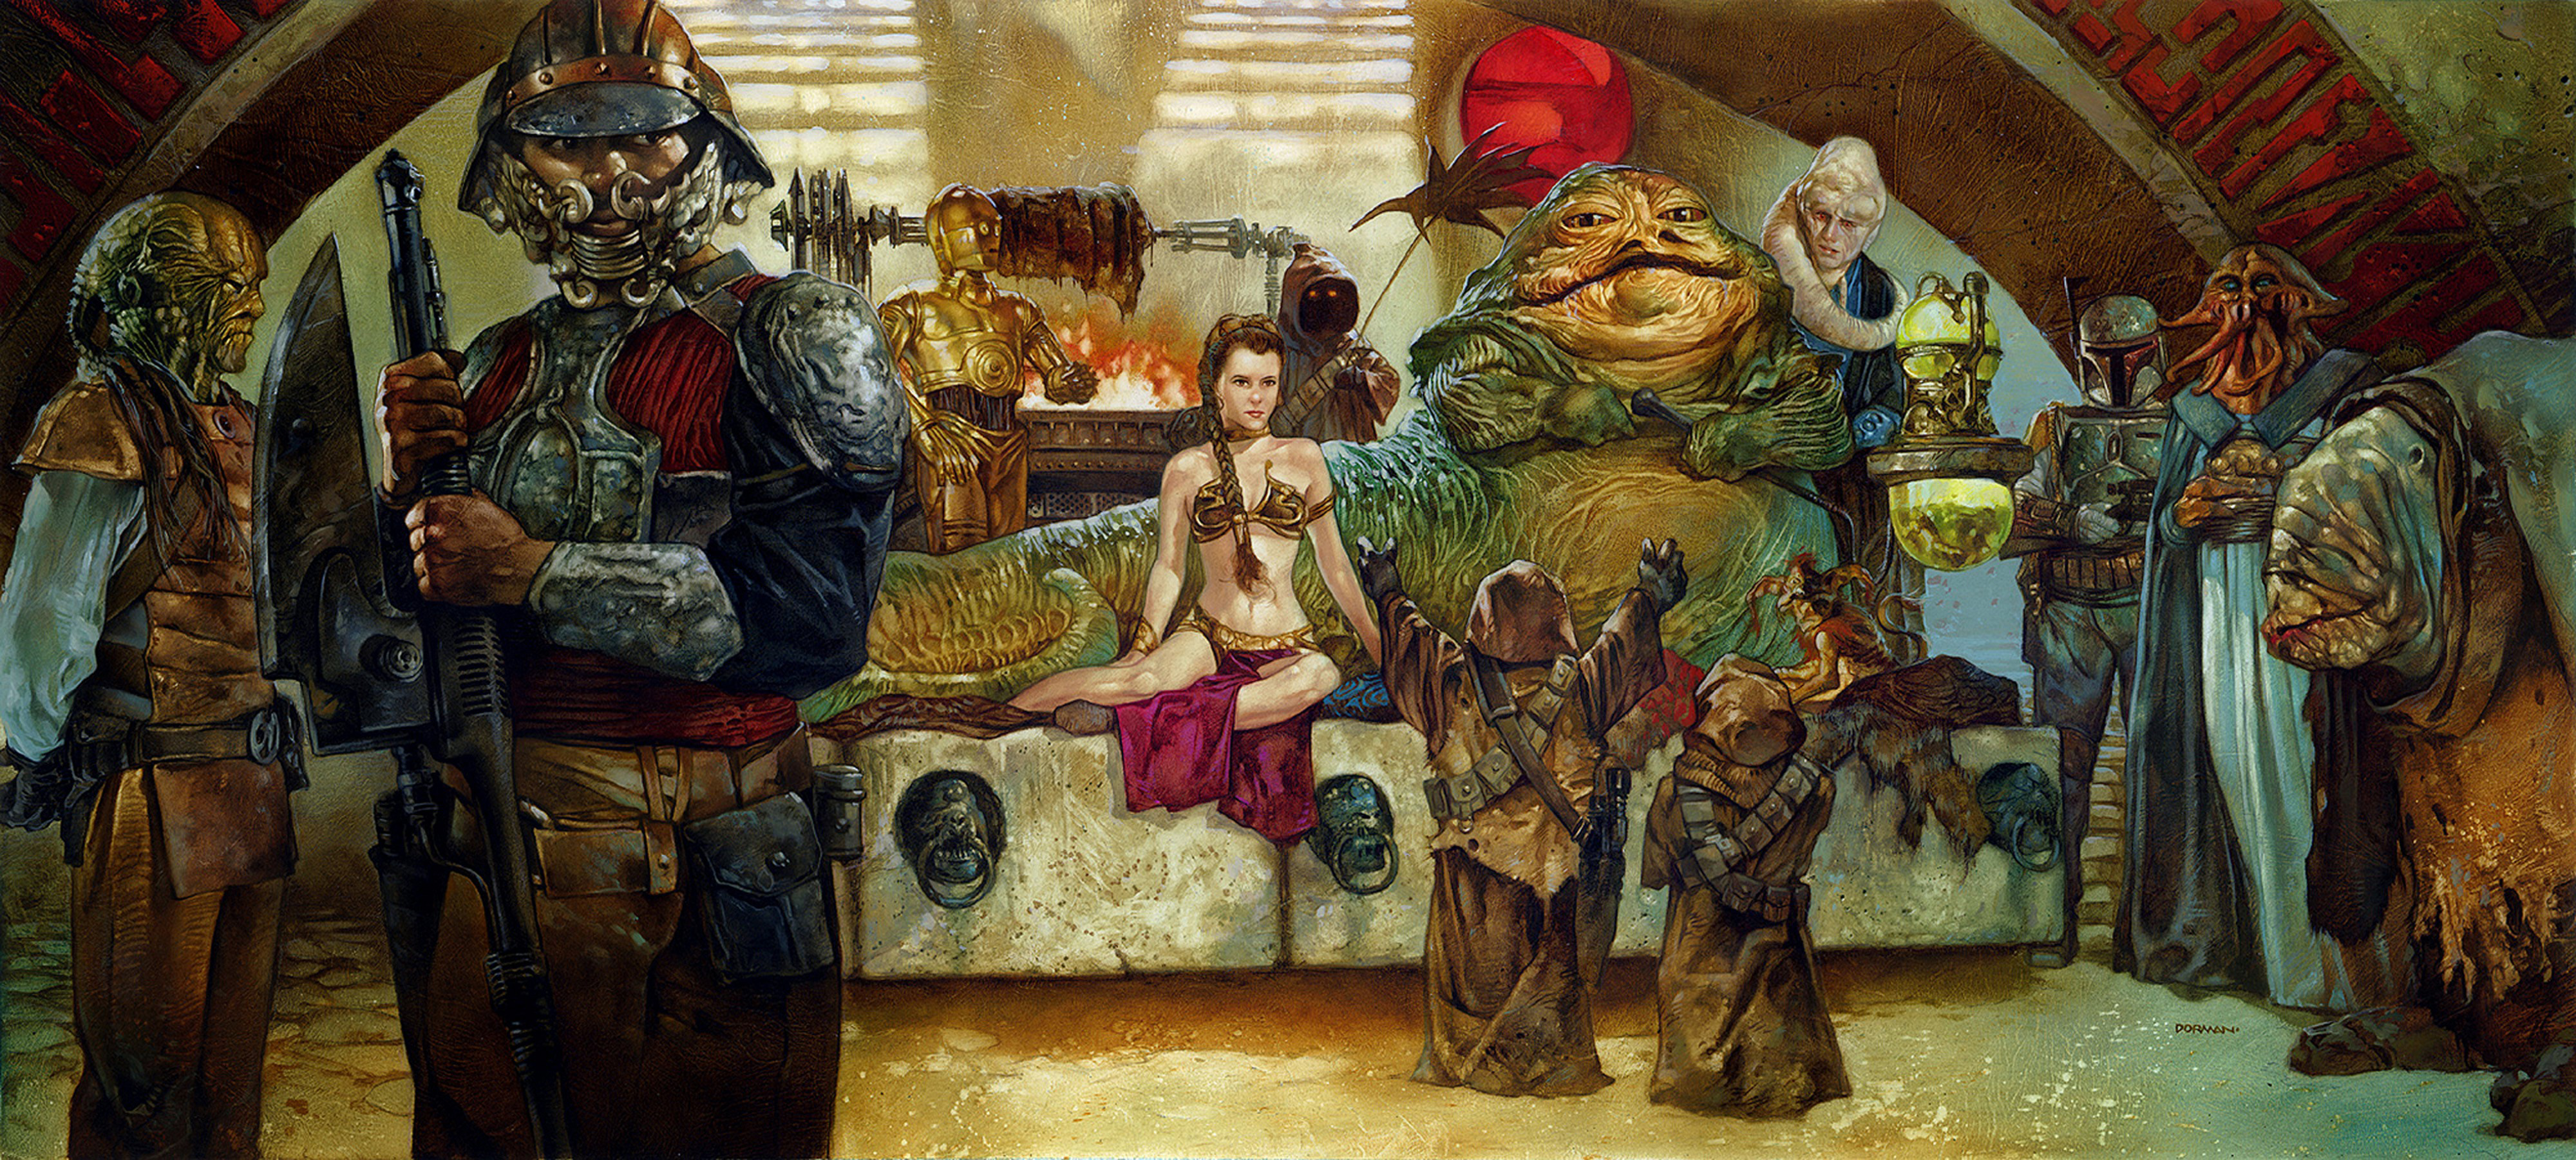 In the Court of Jabba the Hutt.jpg